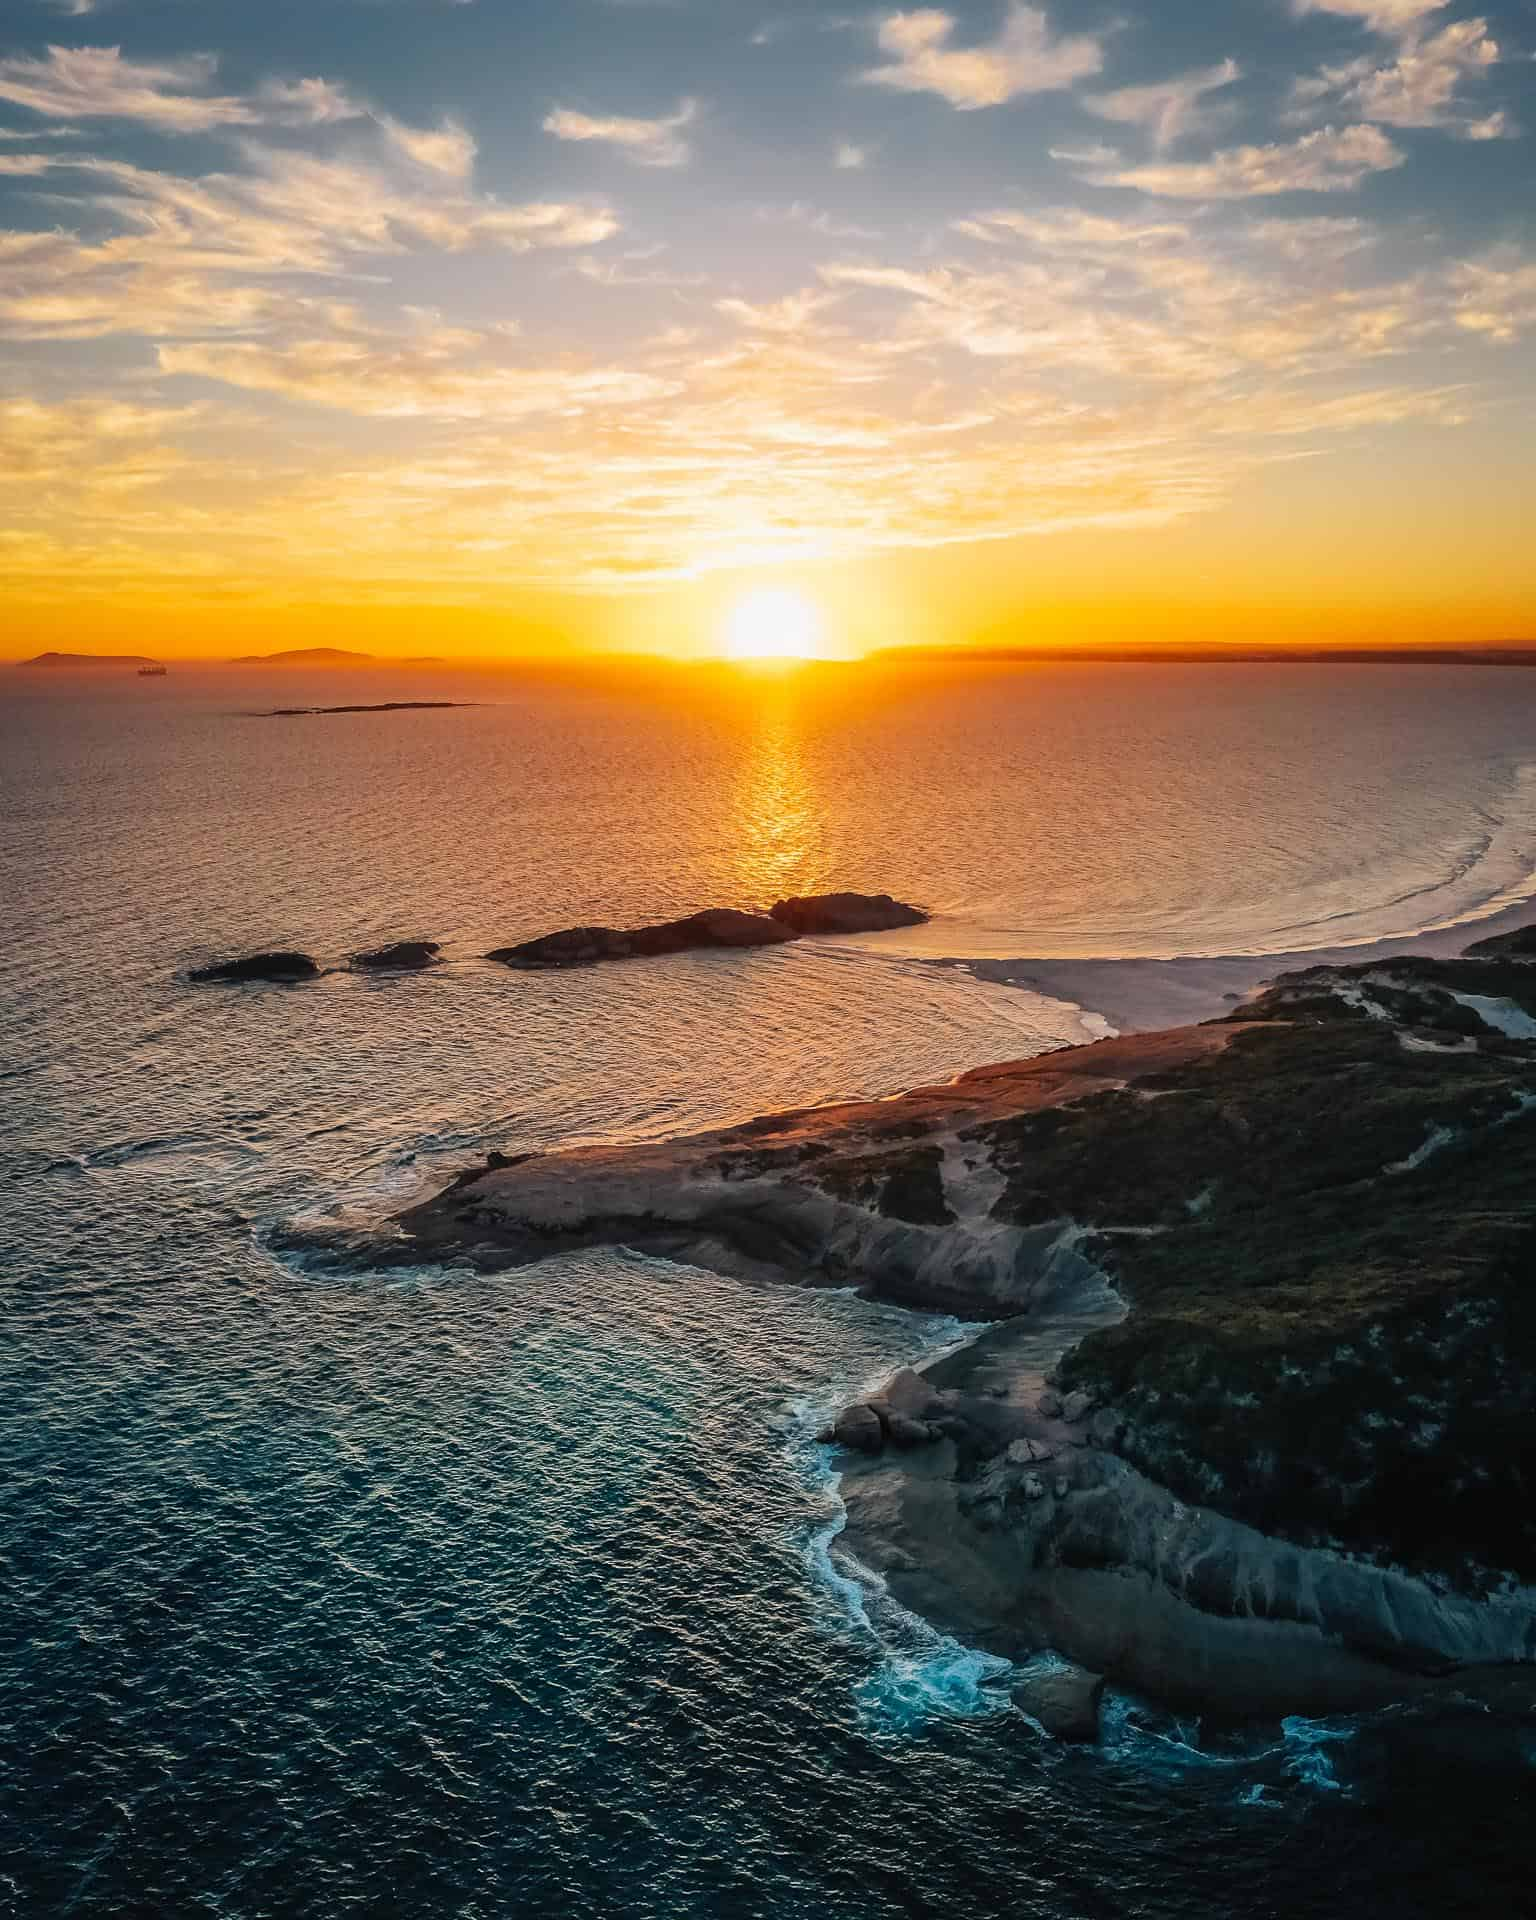 things to do in esperance, what to do in esperance, esperance things to do, esperance attractions, beaches in esperance, wylie bay rock, wylie bay rock esperance